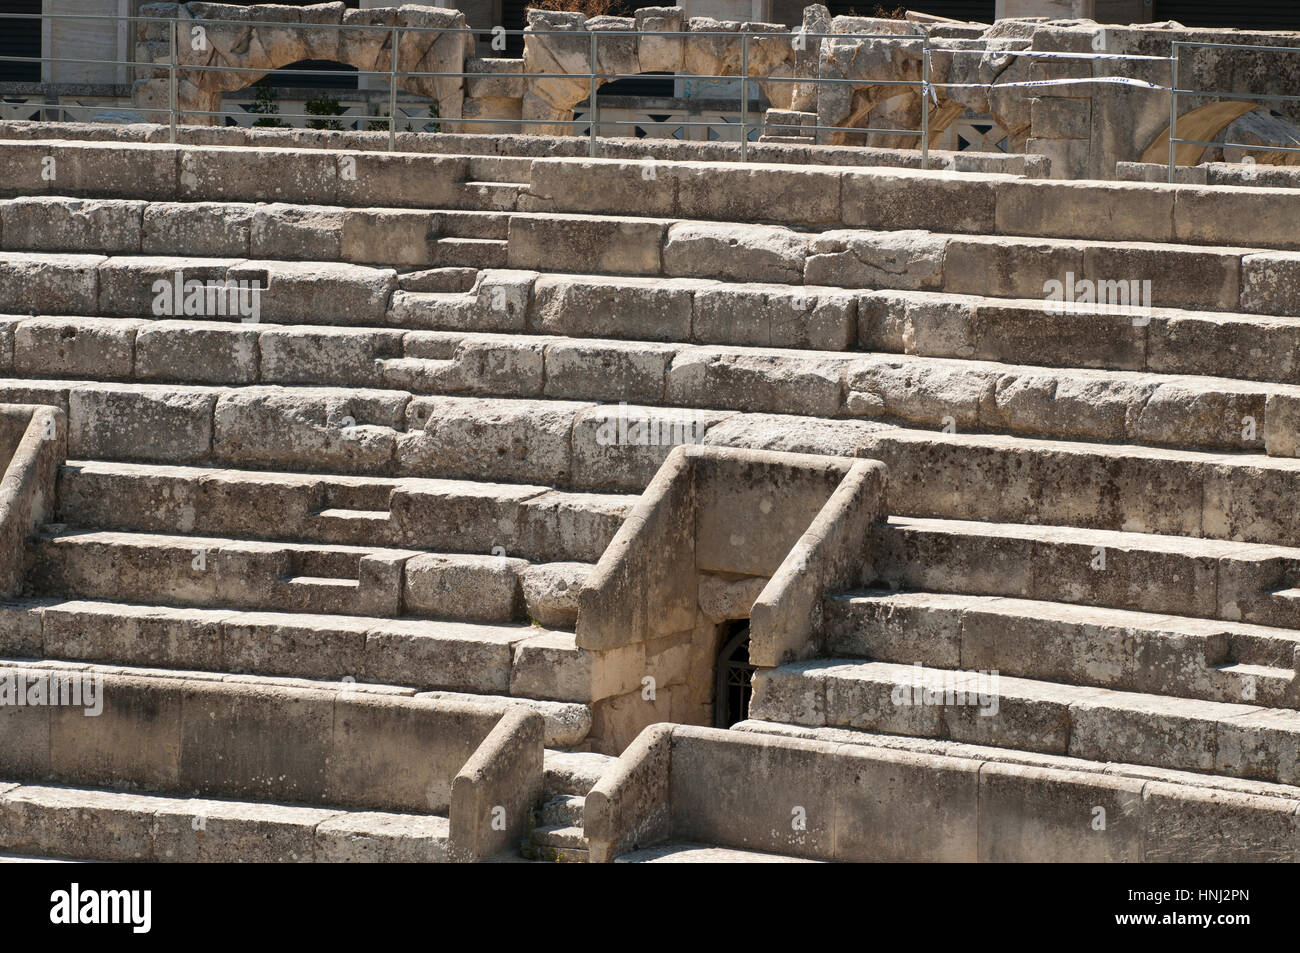 Details of the steps of the ancient Roman amphitheater in Lecce Stock Photo